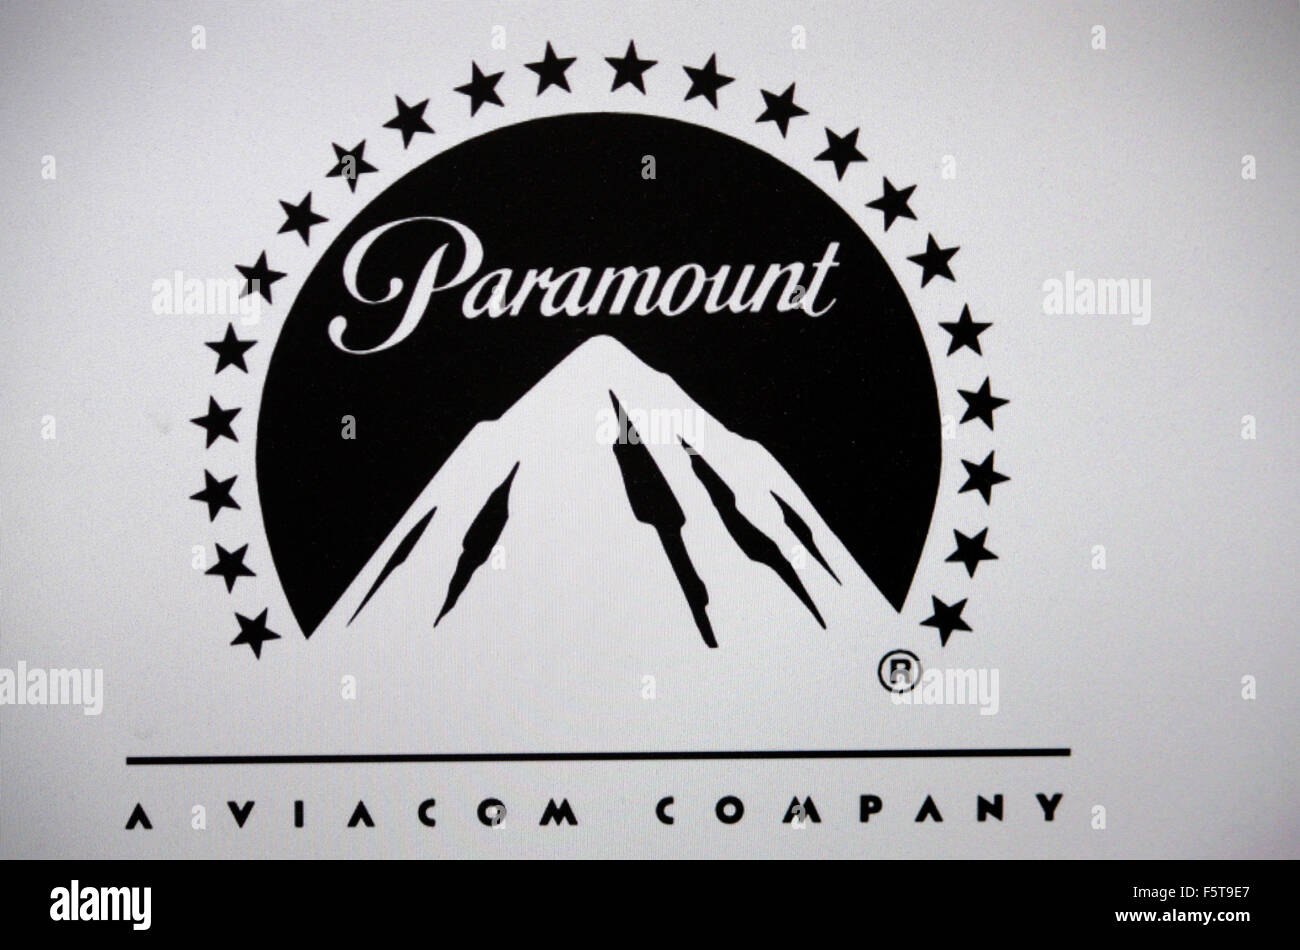 Markenname: 'Paramount Pictures', Berlin. - Stock Image